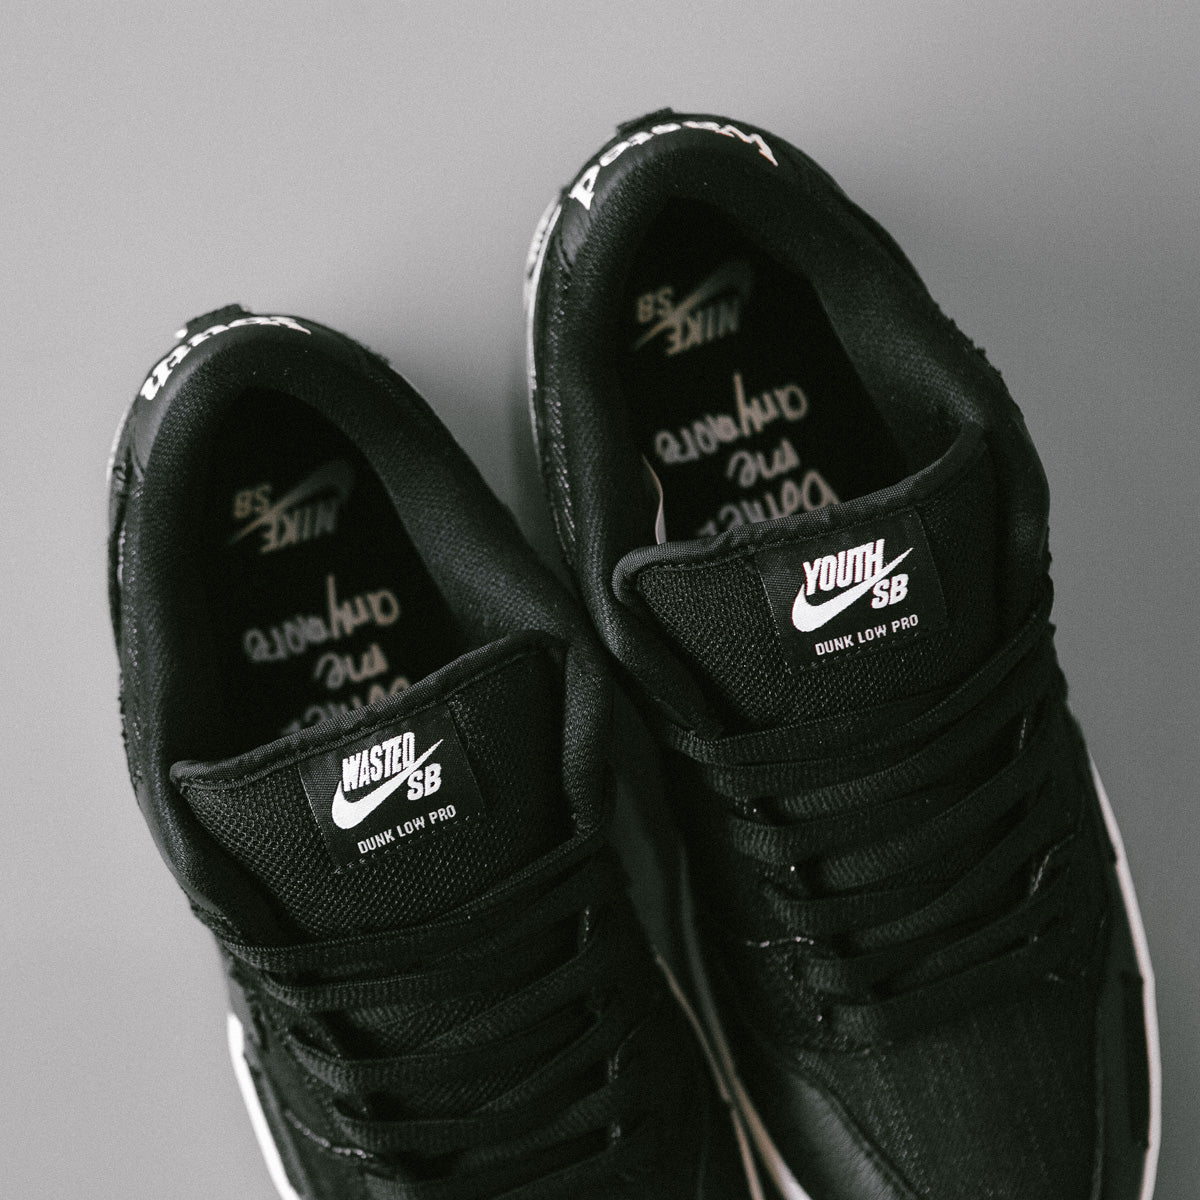 Nike SB x Wasted Youth Dunk Low Pro | Flatspot